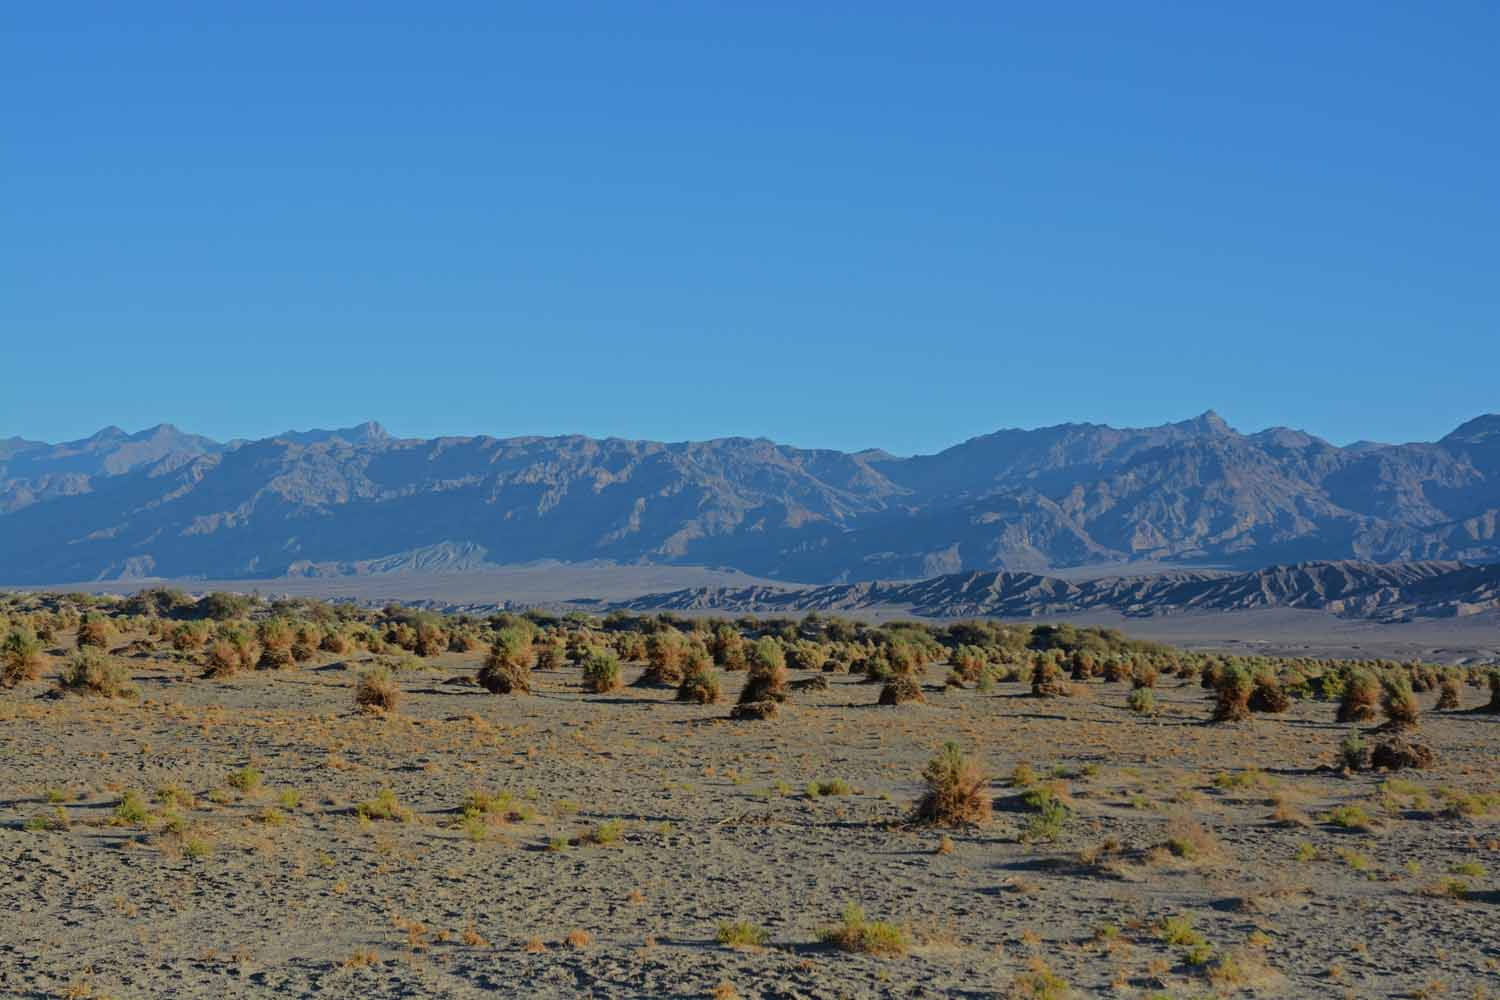 This is call the Devil's Corn field.  A desert plant that looks like it was planted.